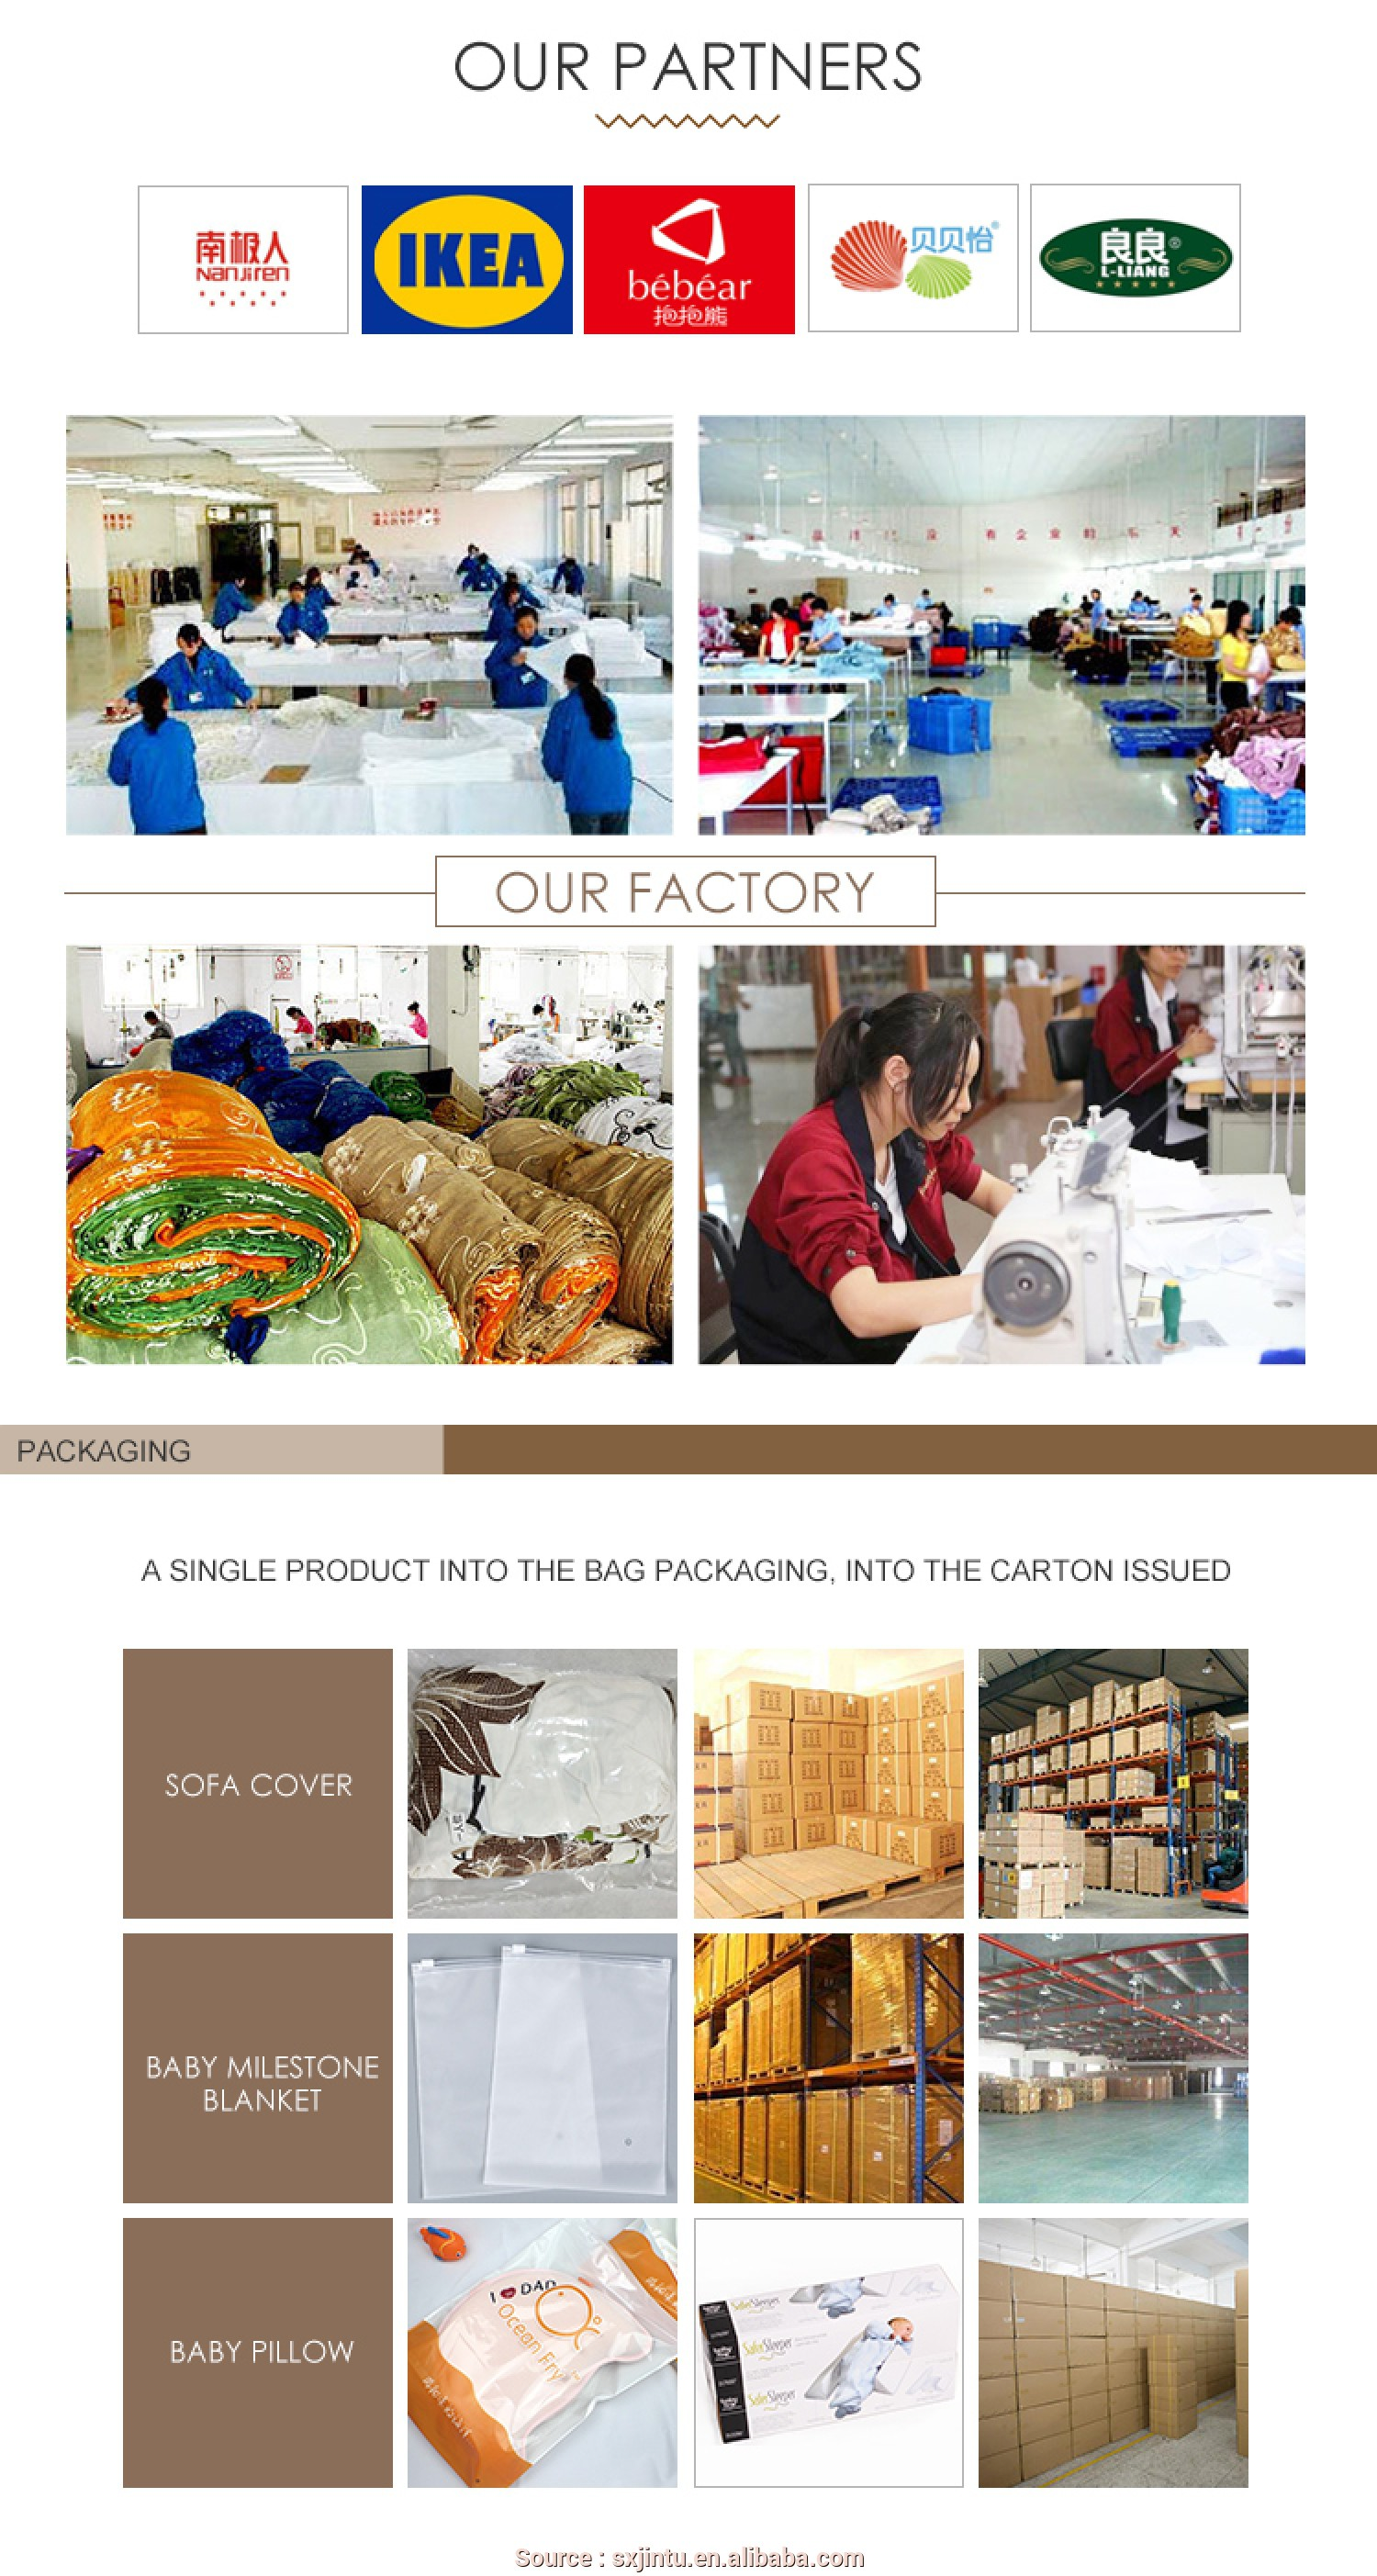 Amazon Copridivano A L, Costoso Company Overview, Shaoxing Qiangou Textile Co., Ltd